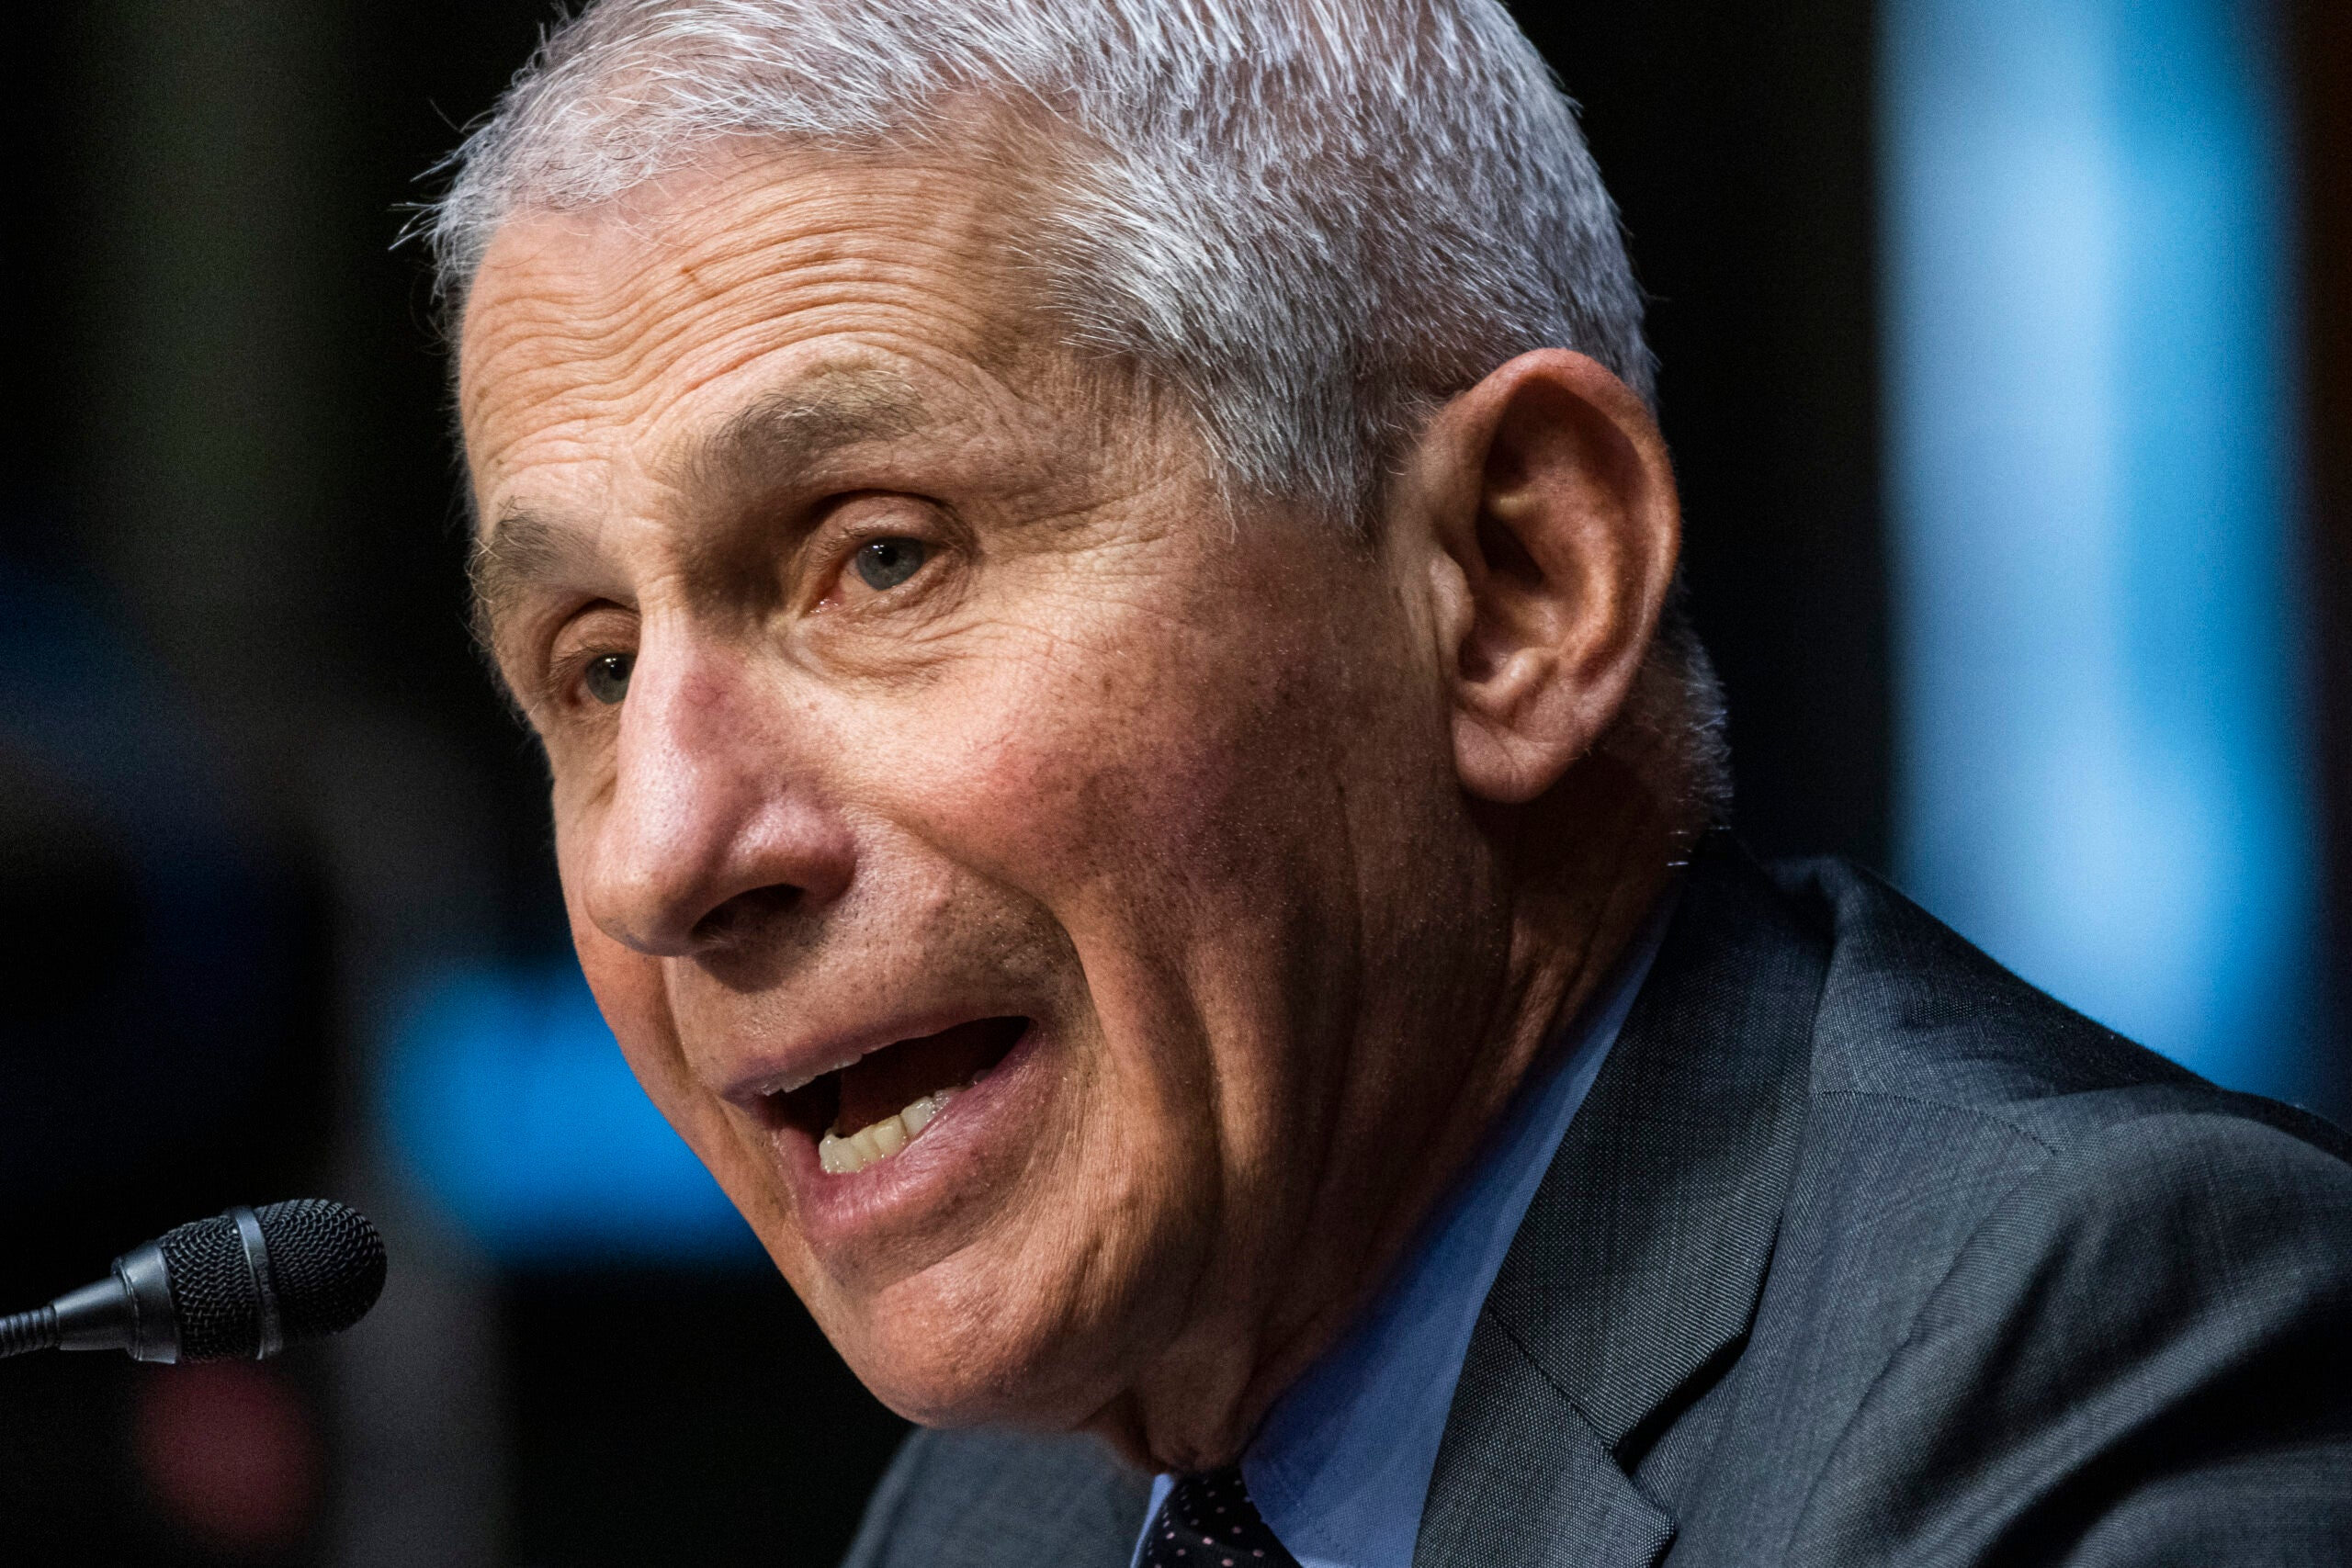 Dr. Fauci says pandemic exposed 'undeniable effects of racism'